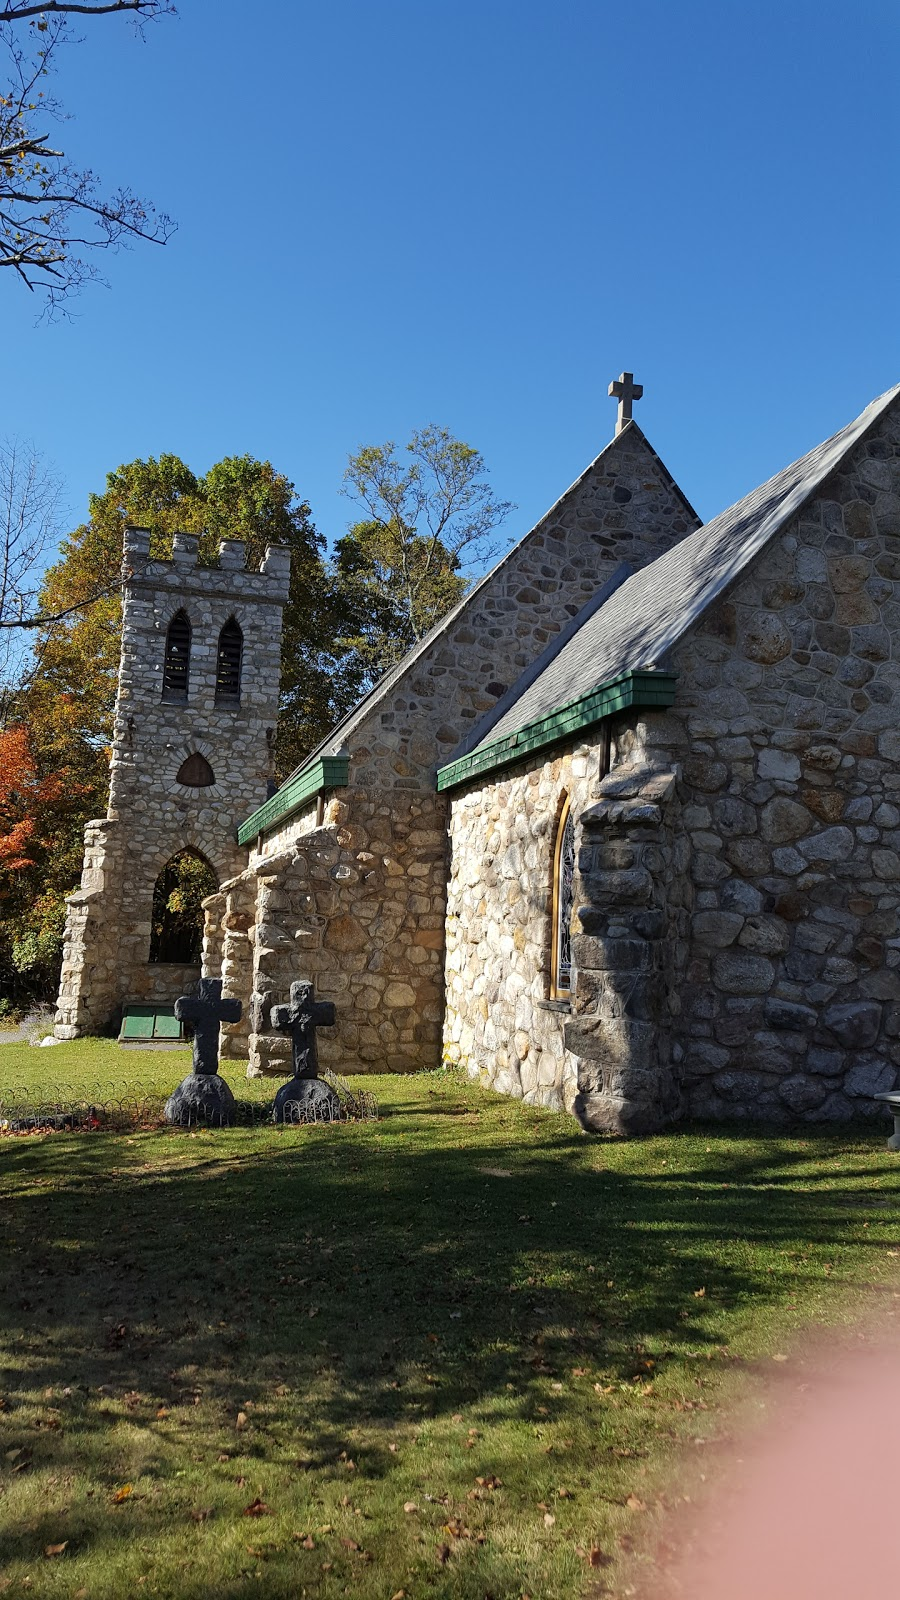 Cragsmoor Stone Church - church  | Photo 9 of 10 | Address: 280 Henry Rd, Cragsmoor, NY 12420, USA